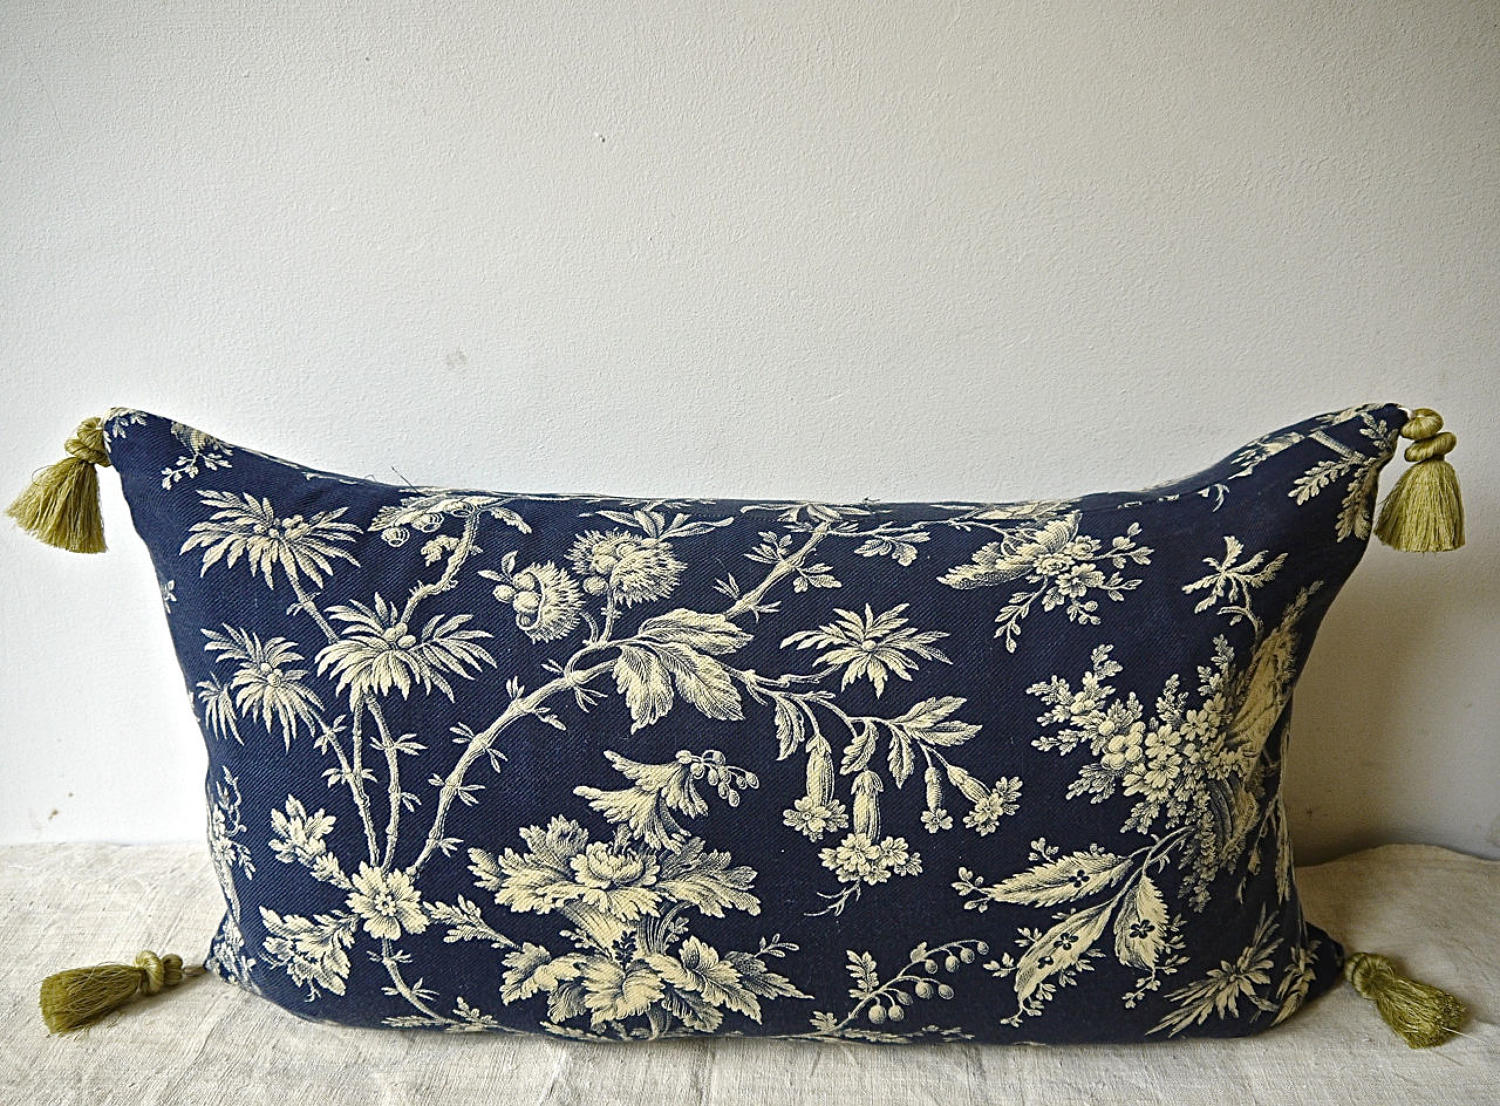 Indigo and Cream Indienne Cotton Cushion French 19th Century